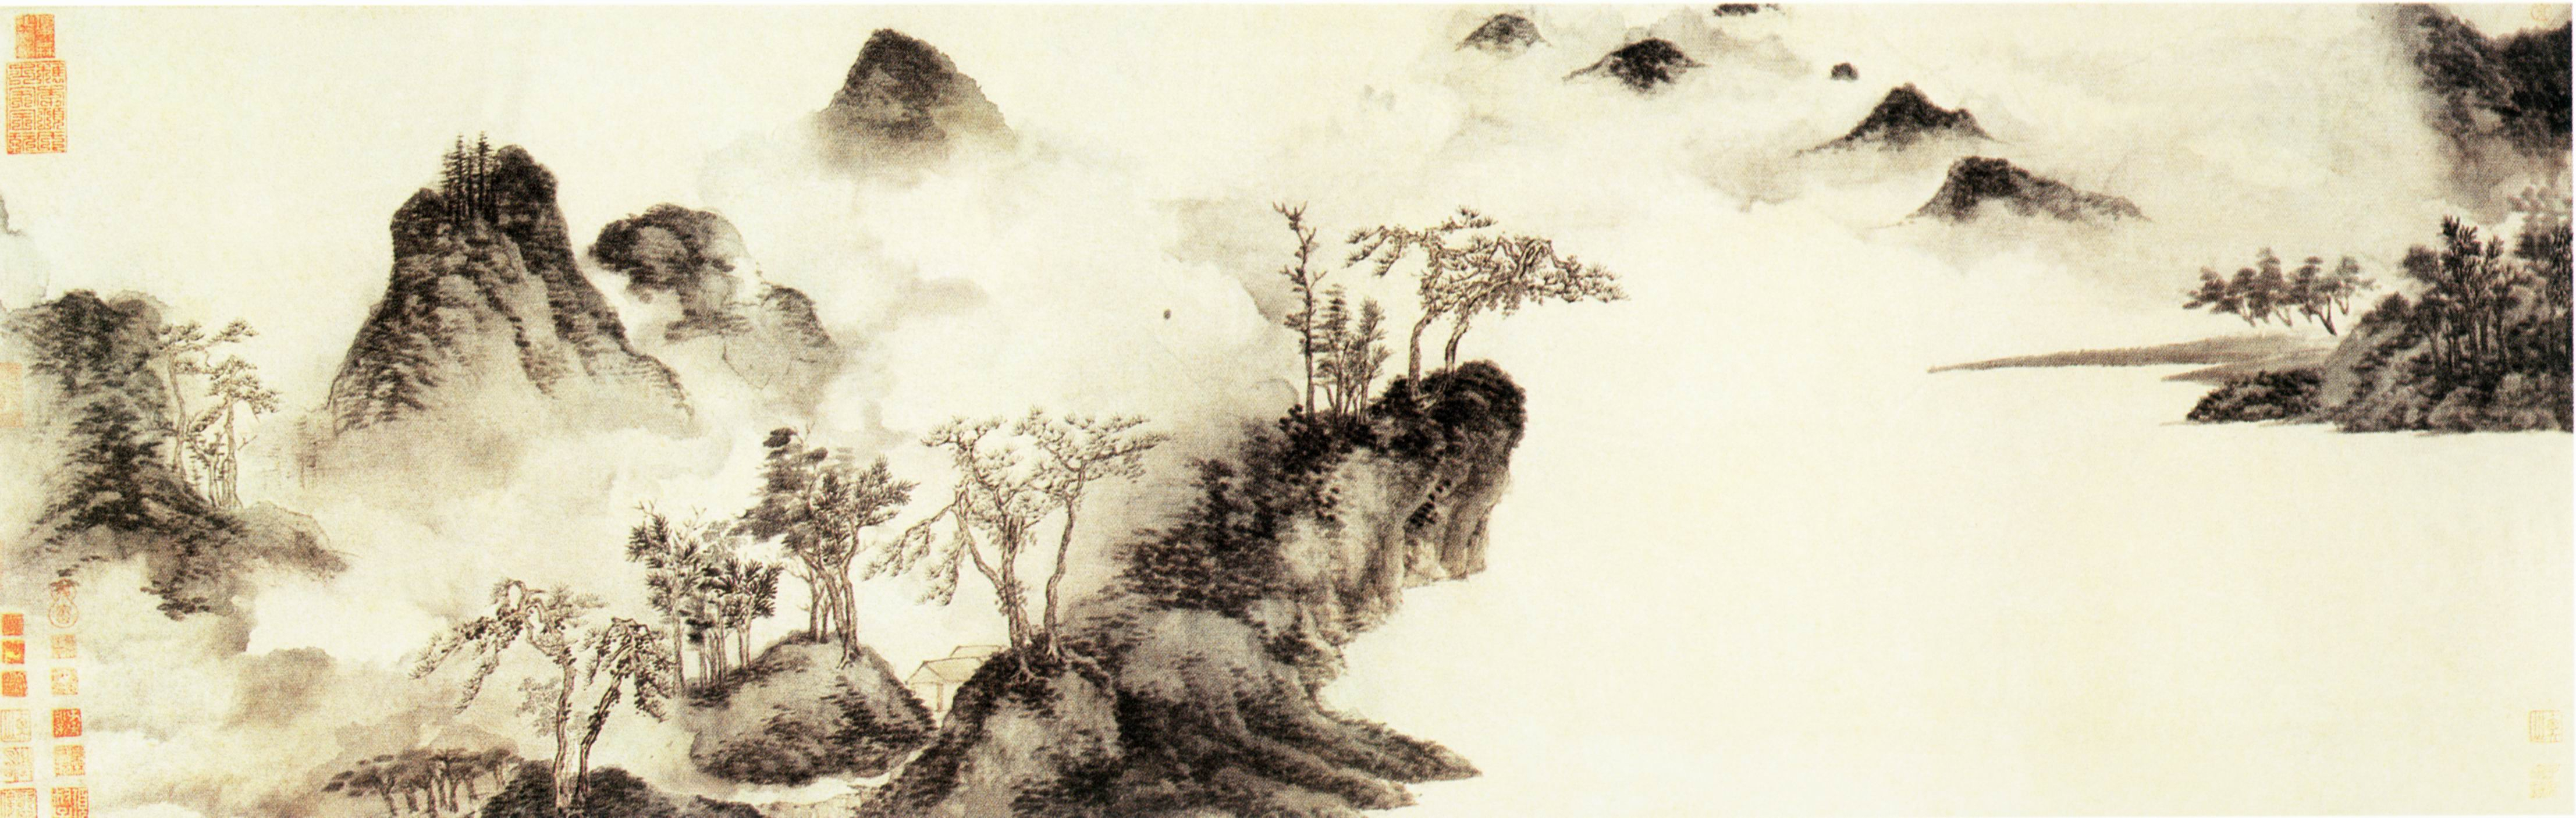 4427x1406 Landscape Drawings To Copy Chinese Landscape Drawing Copy